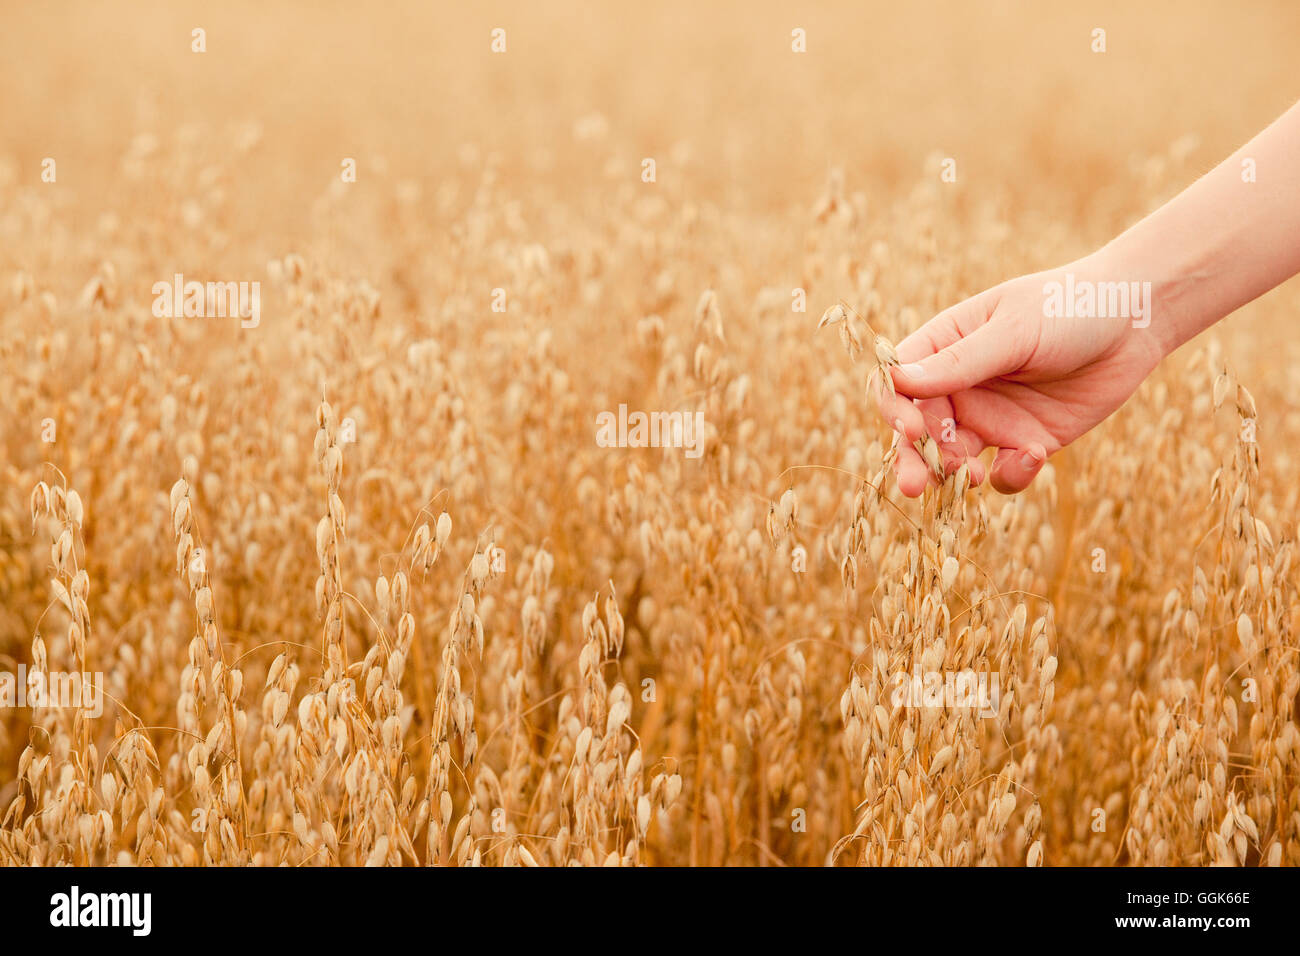 Hand touching ripe seeds in an oat field, Frankenau, Hesse, Germany, Europe - Stock Image